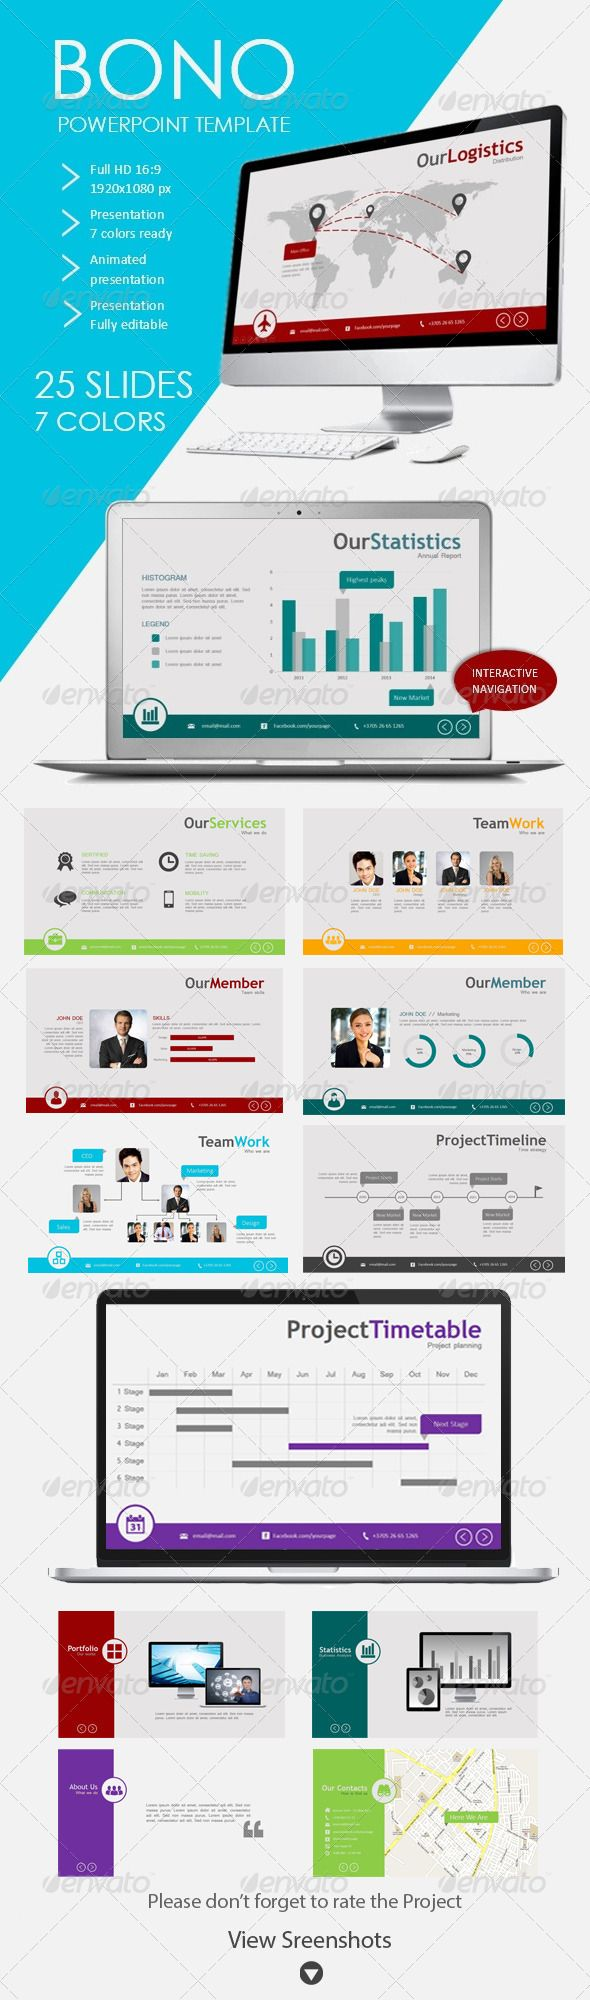 28 best powerpoint templates images on pinterest | business, Modern powerpoint